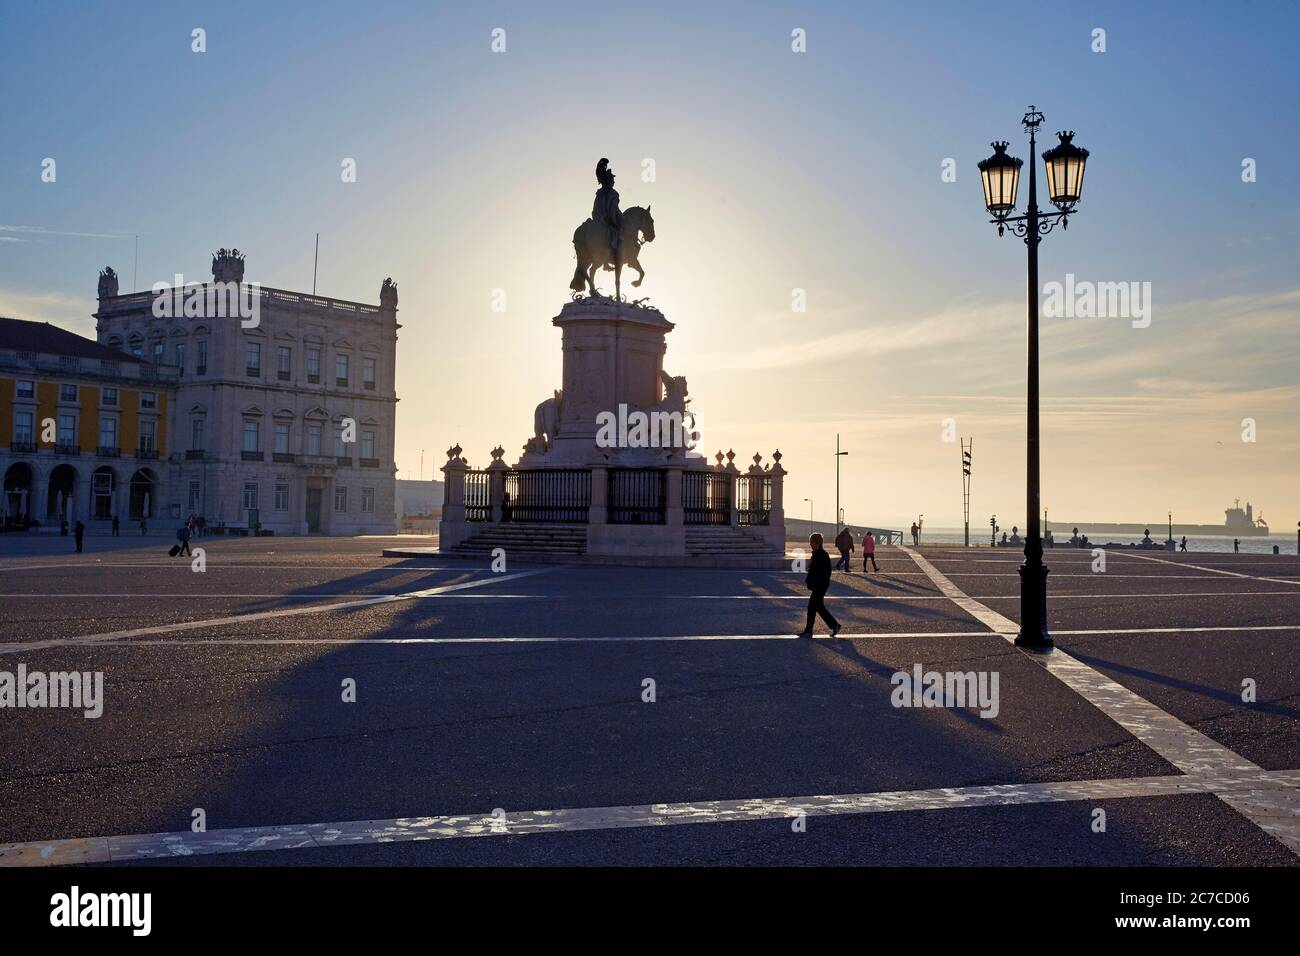 Statue of King Jose I on Praca de Commercial in Lisbon at sunrise Stock Photo